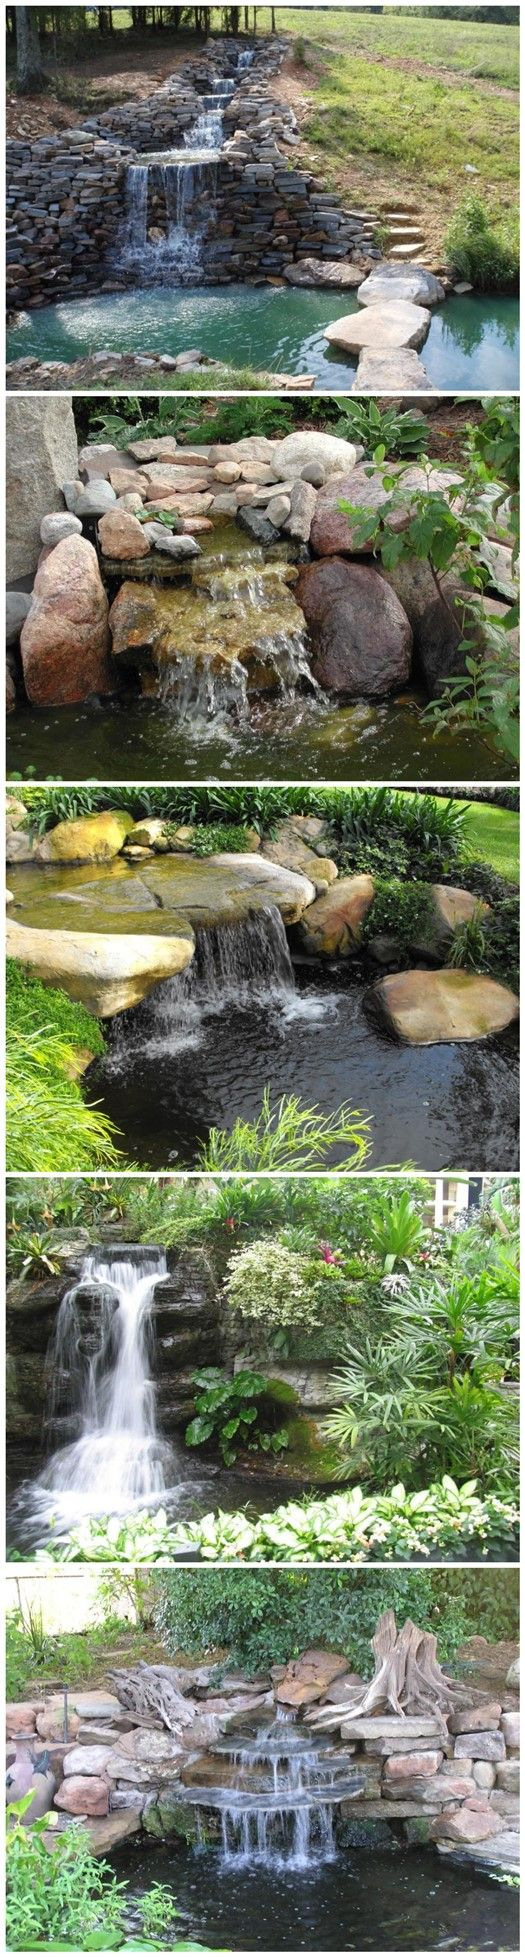 how to get a pond ready for fish